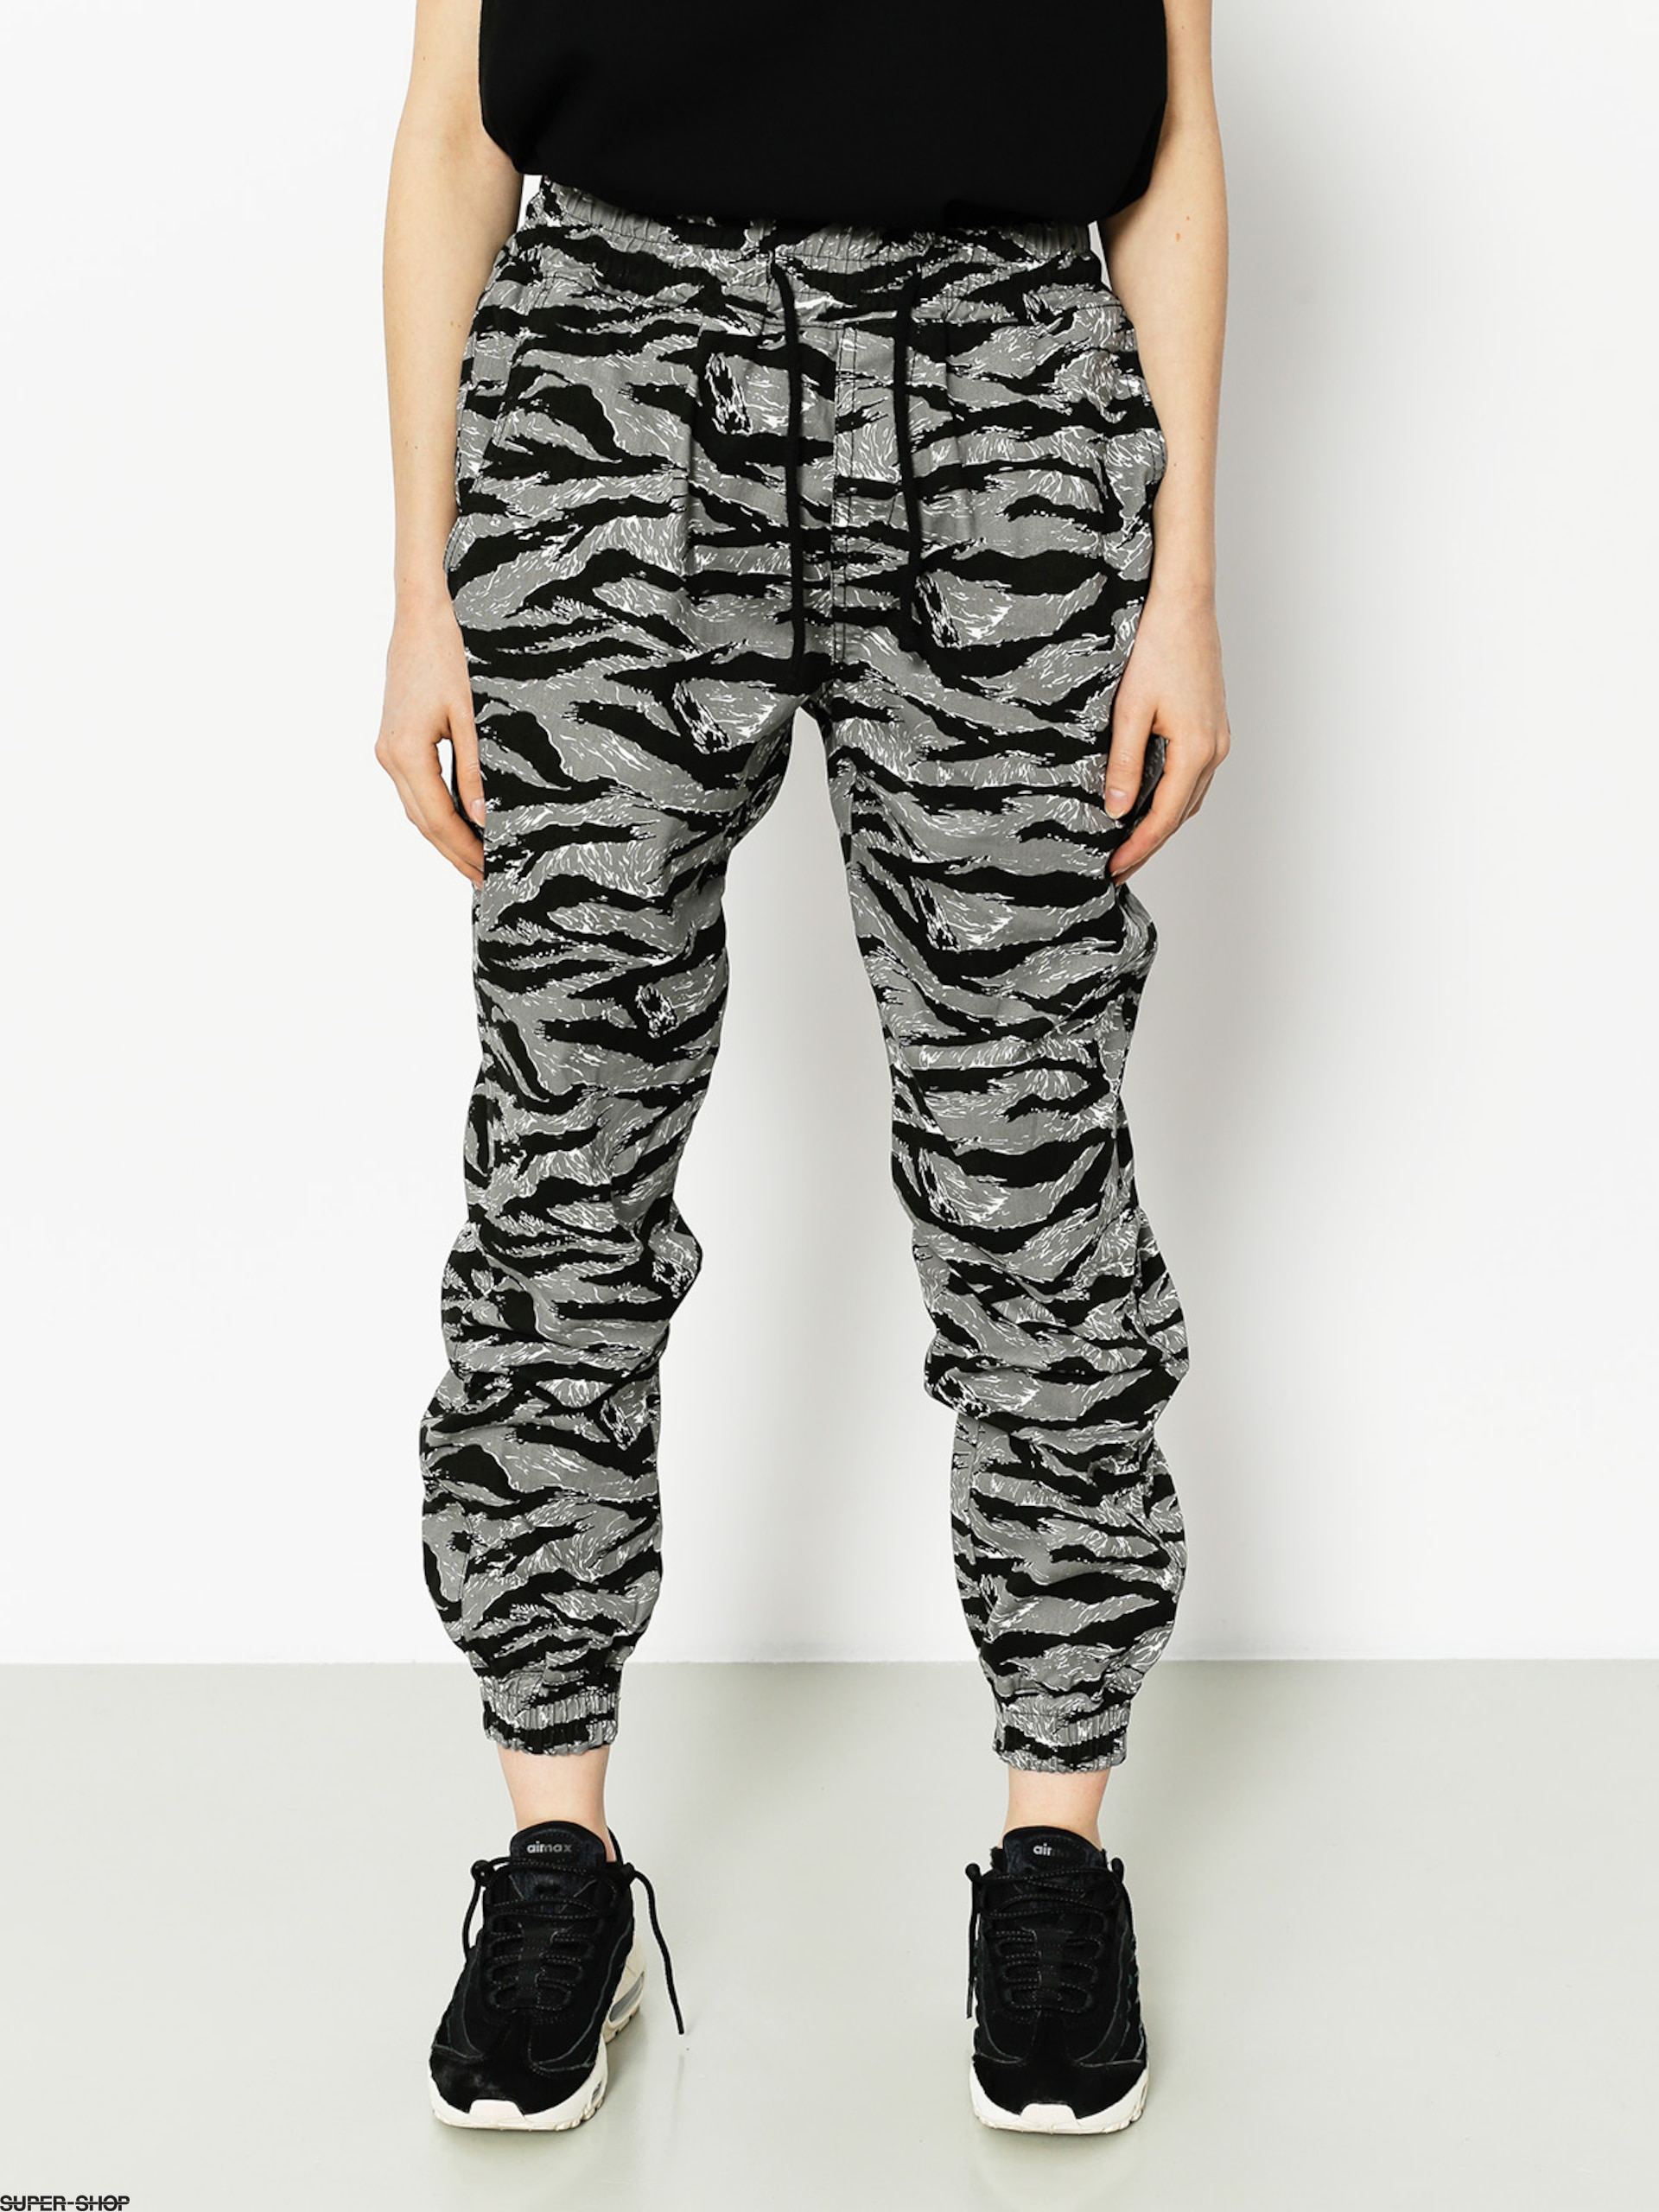 Diamante Wear Pants Classic Rm Jogger (tiger camo)